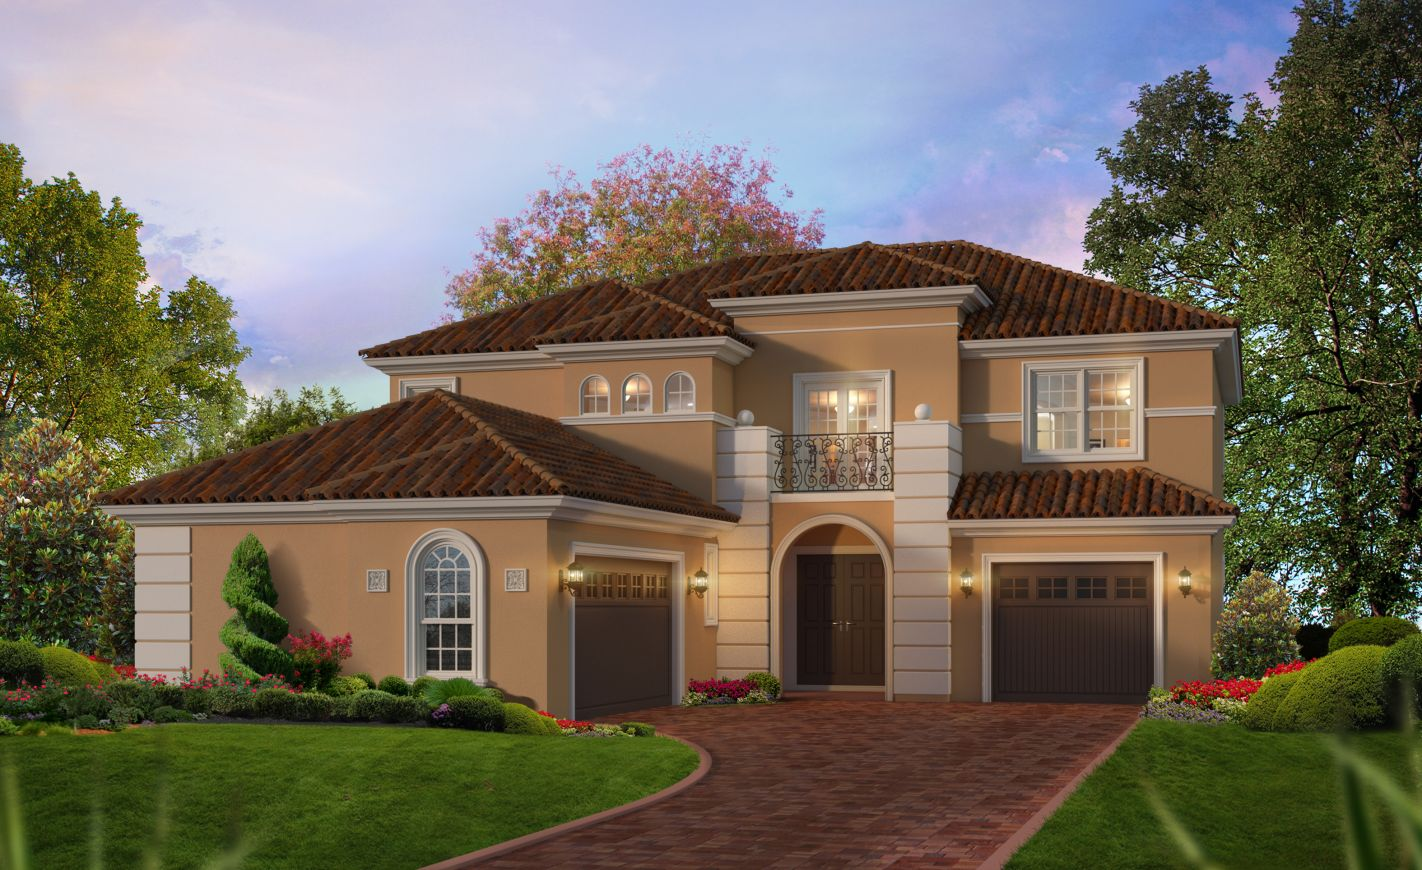 Jacksonville Homes for Sale - The Victoria at Tamaya